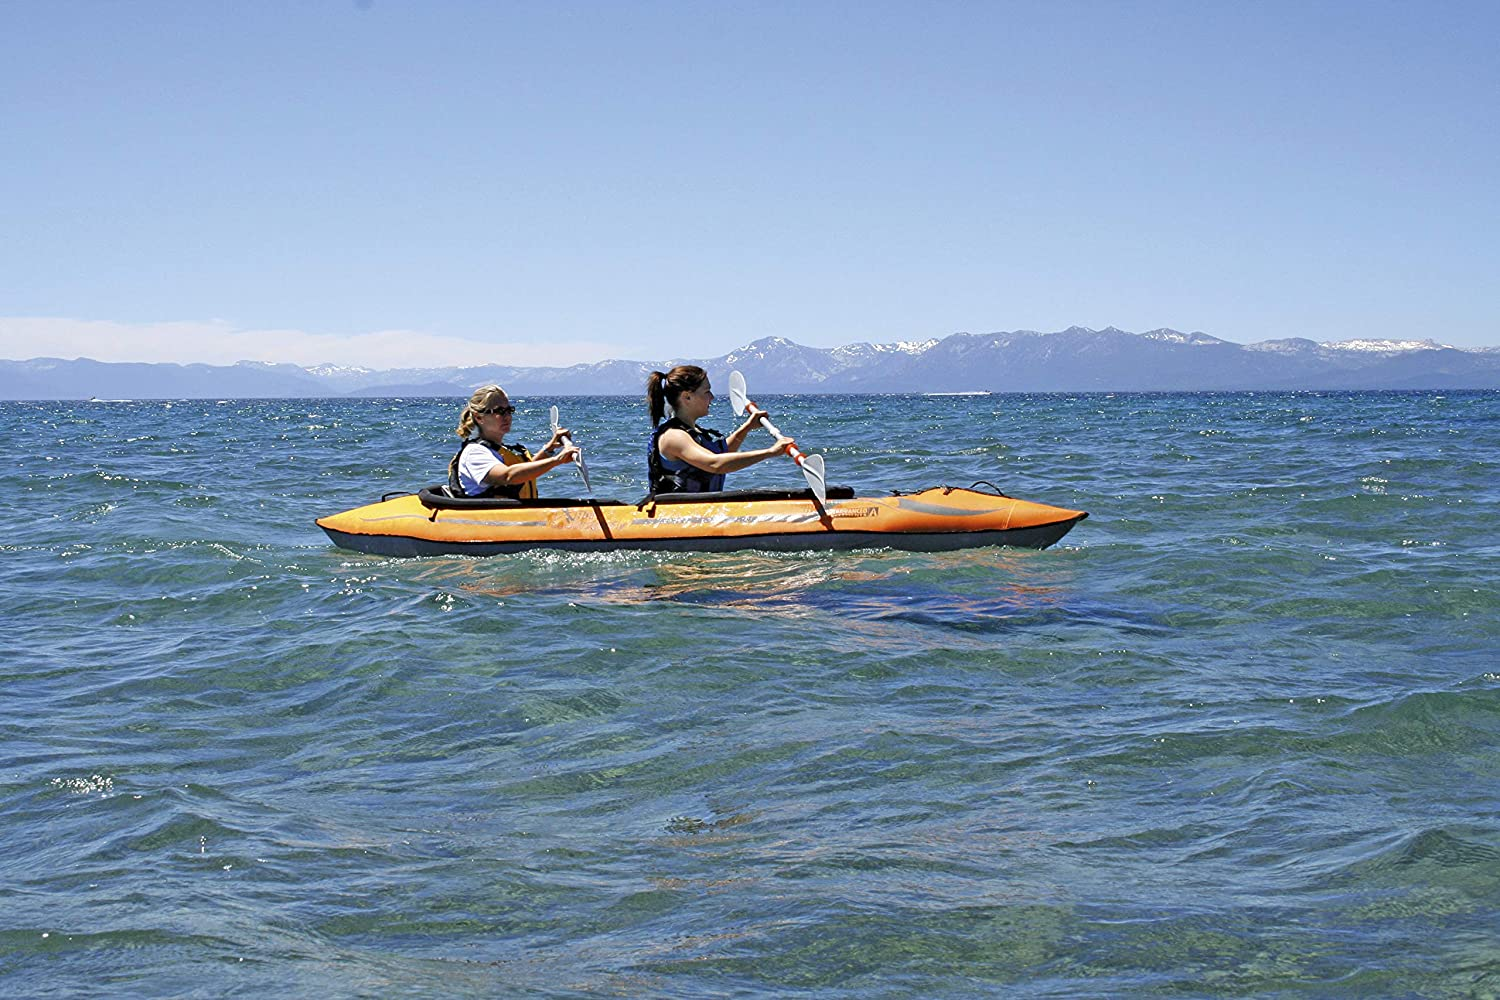 two woman paddling in a kayak on an ocean